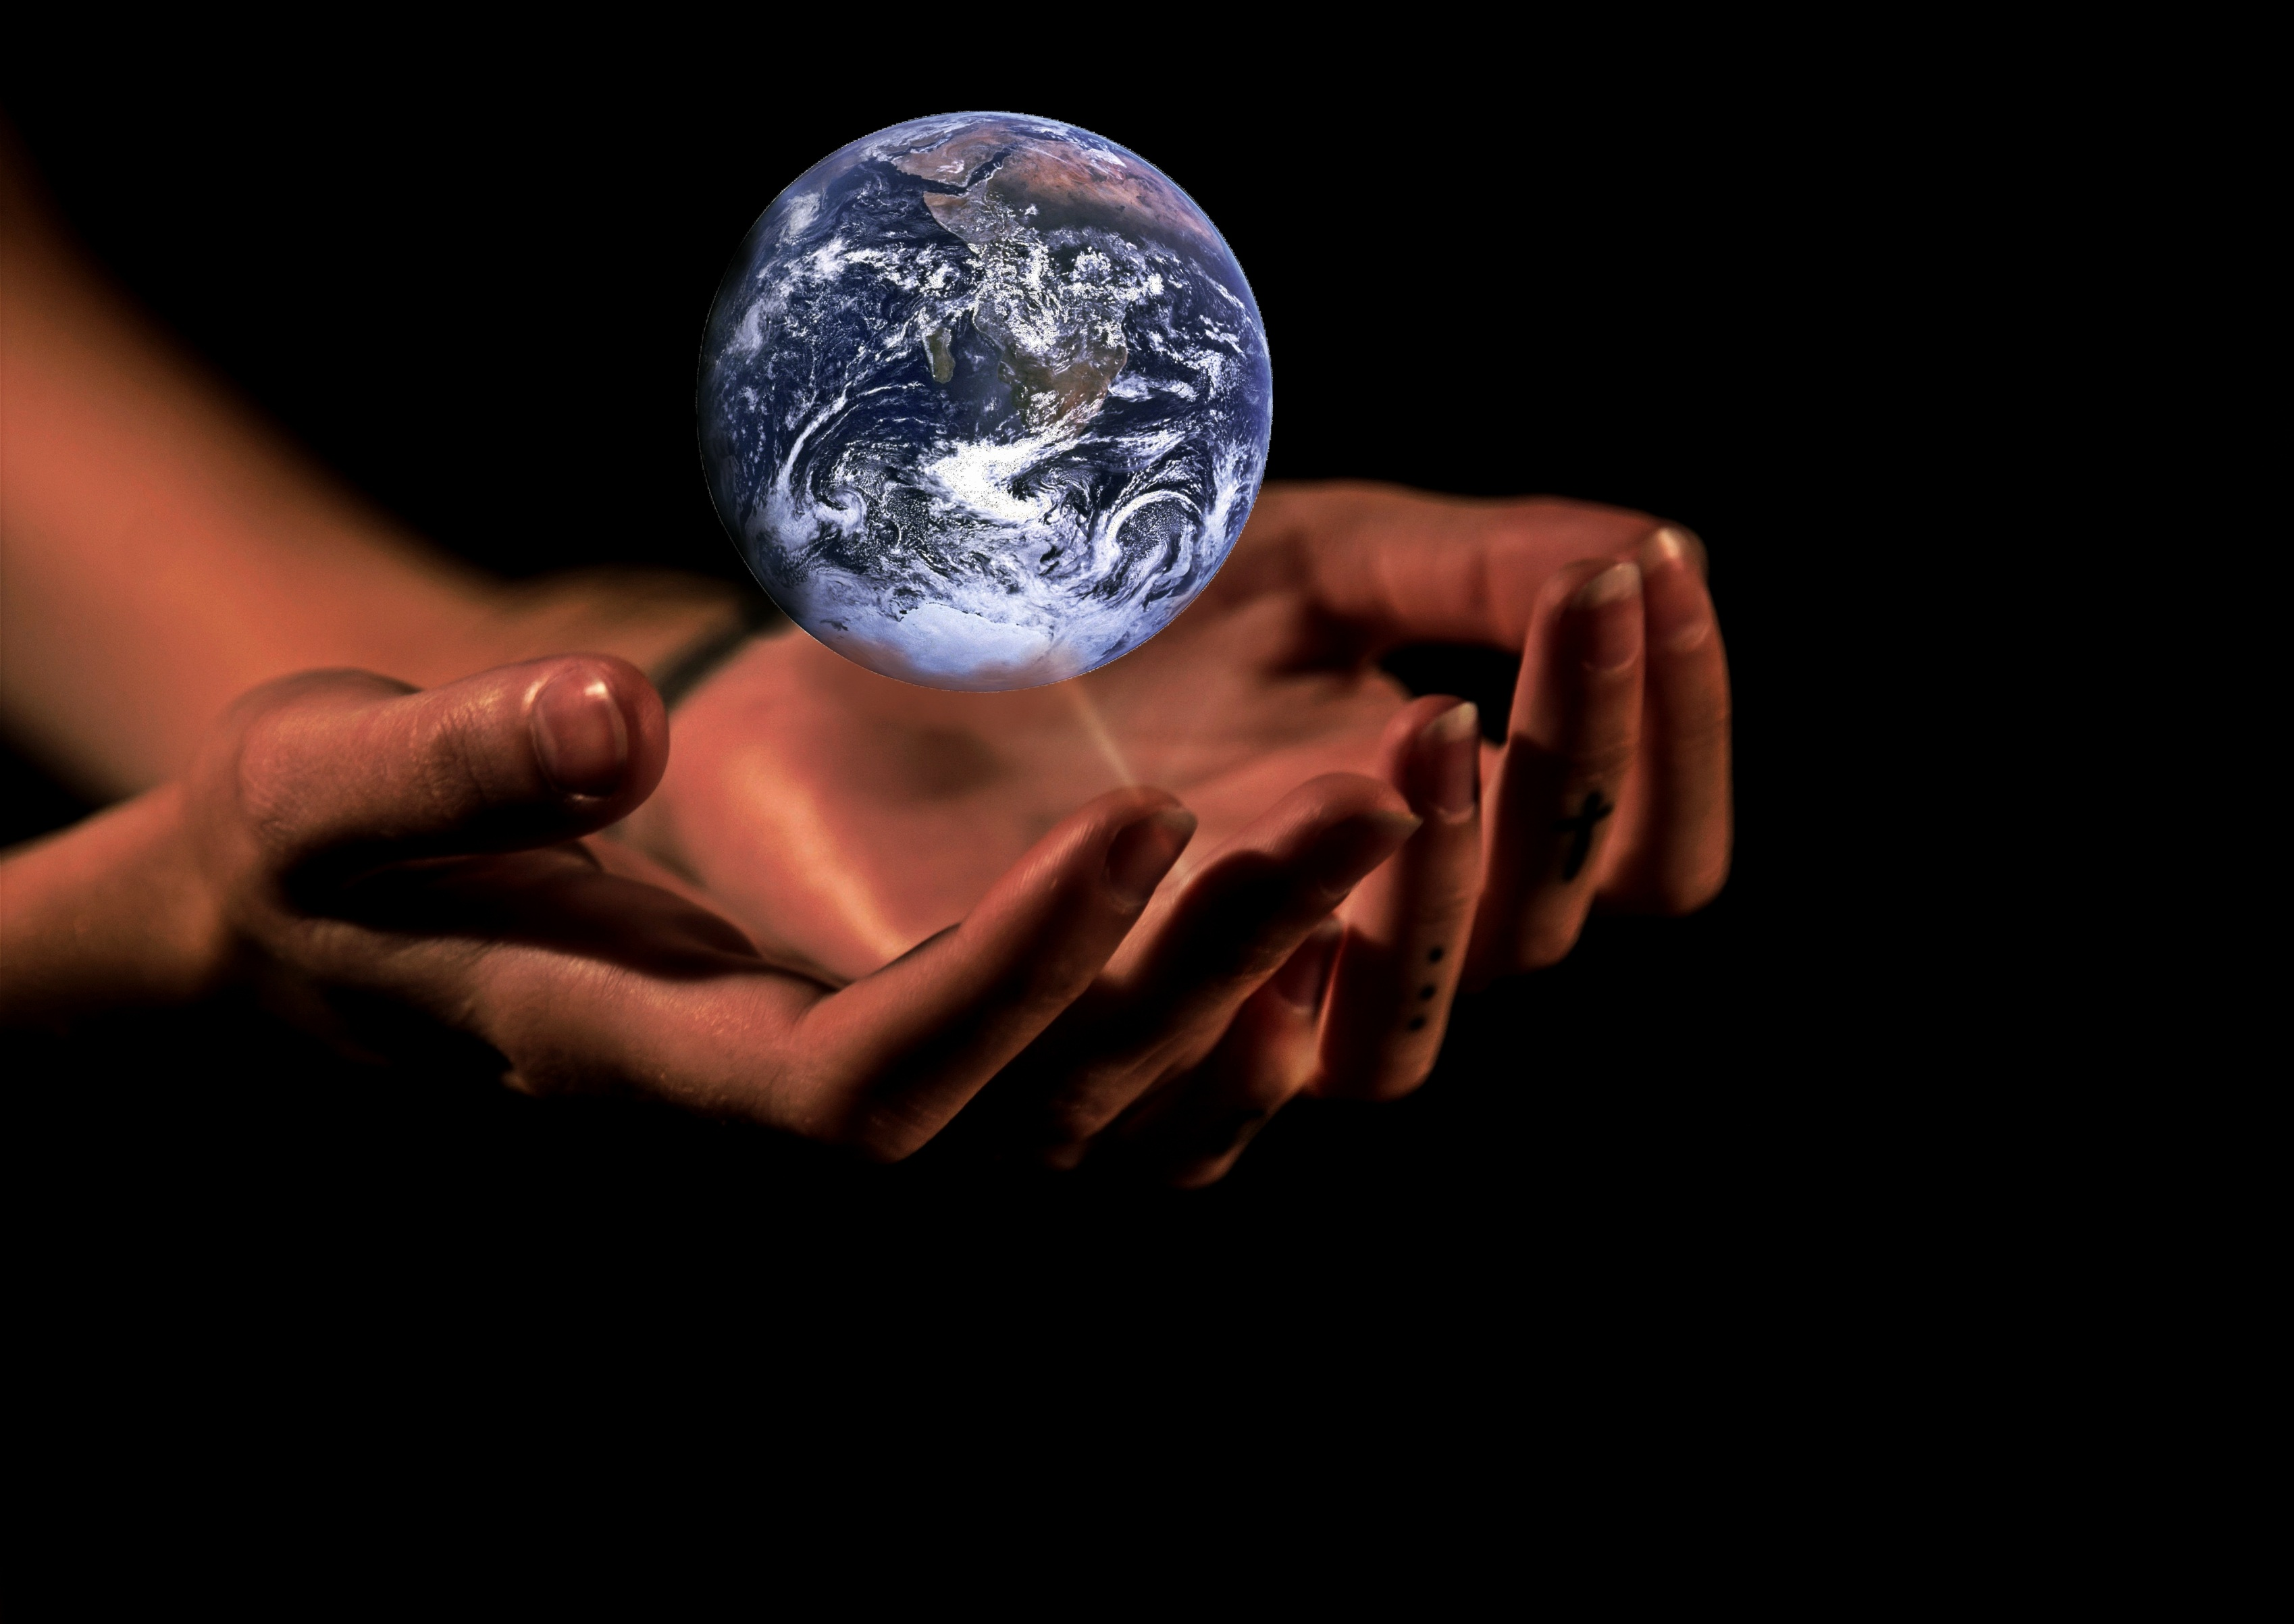 Earth in the Hands, Activity, Ball, Earth, Hands, HQ Photo